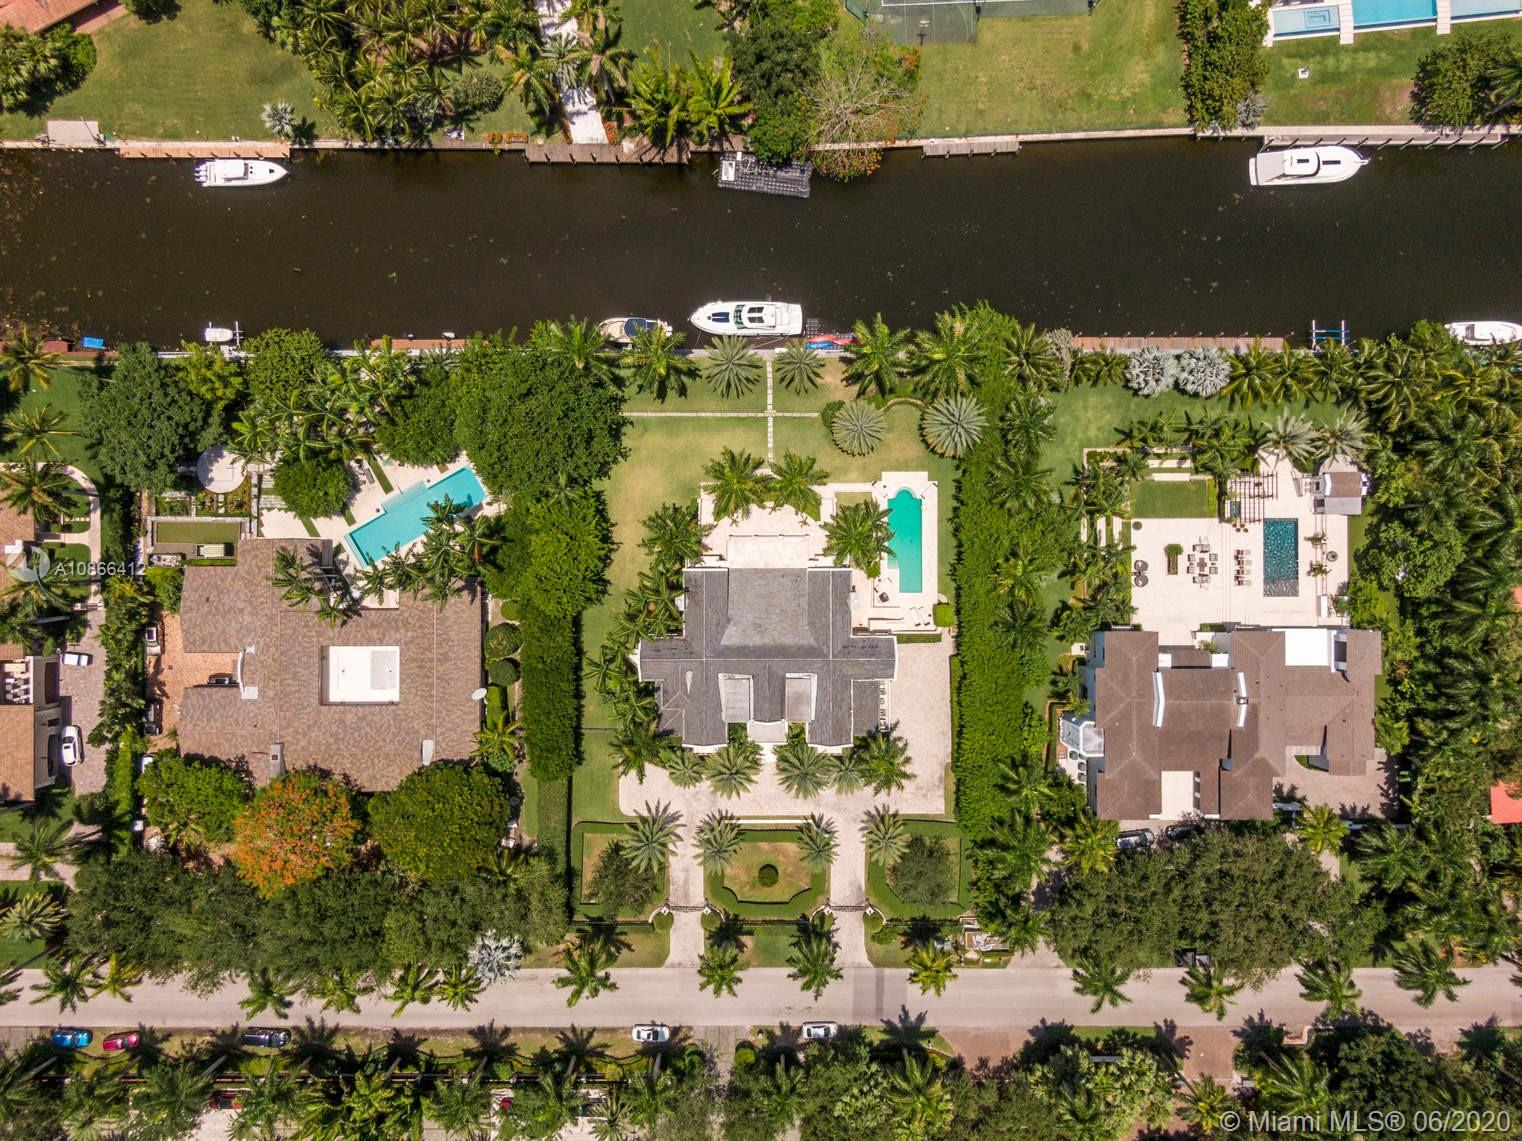 Impressive boater's dream mansion with 180ft of waterfront, a 20,000lb boat lift with unobstructed access to the Atlantic Ocean. Conveniently elevated against floods, this gorgeous estate holds the best value/sqft in the prestigious Gables Estates gated community. Classic luxury and modern style blend into a gorgeous estate as you walk on its marble floors adorned by dramatic double height-ceilings, east & west wings, and imperial stairways. Spectacular water views and open balcony from Master bedroom, encompassing an office, his and hers closets, and a sumptuous bathroom, all connected through its own private vestibule. An elevator services all levels. Reserved pool with access to 2 full bathrooms and a bonus entertainment area. 4 car garage + guest parking via an u shaped gated driveway!